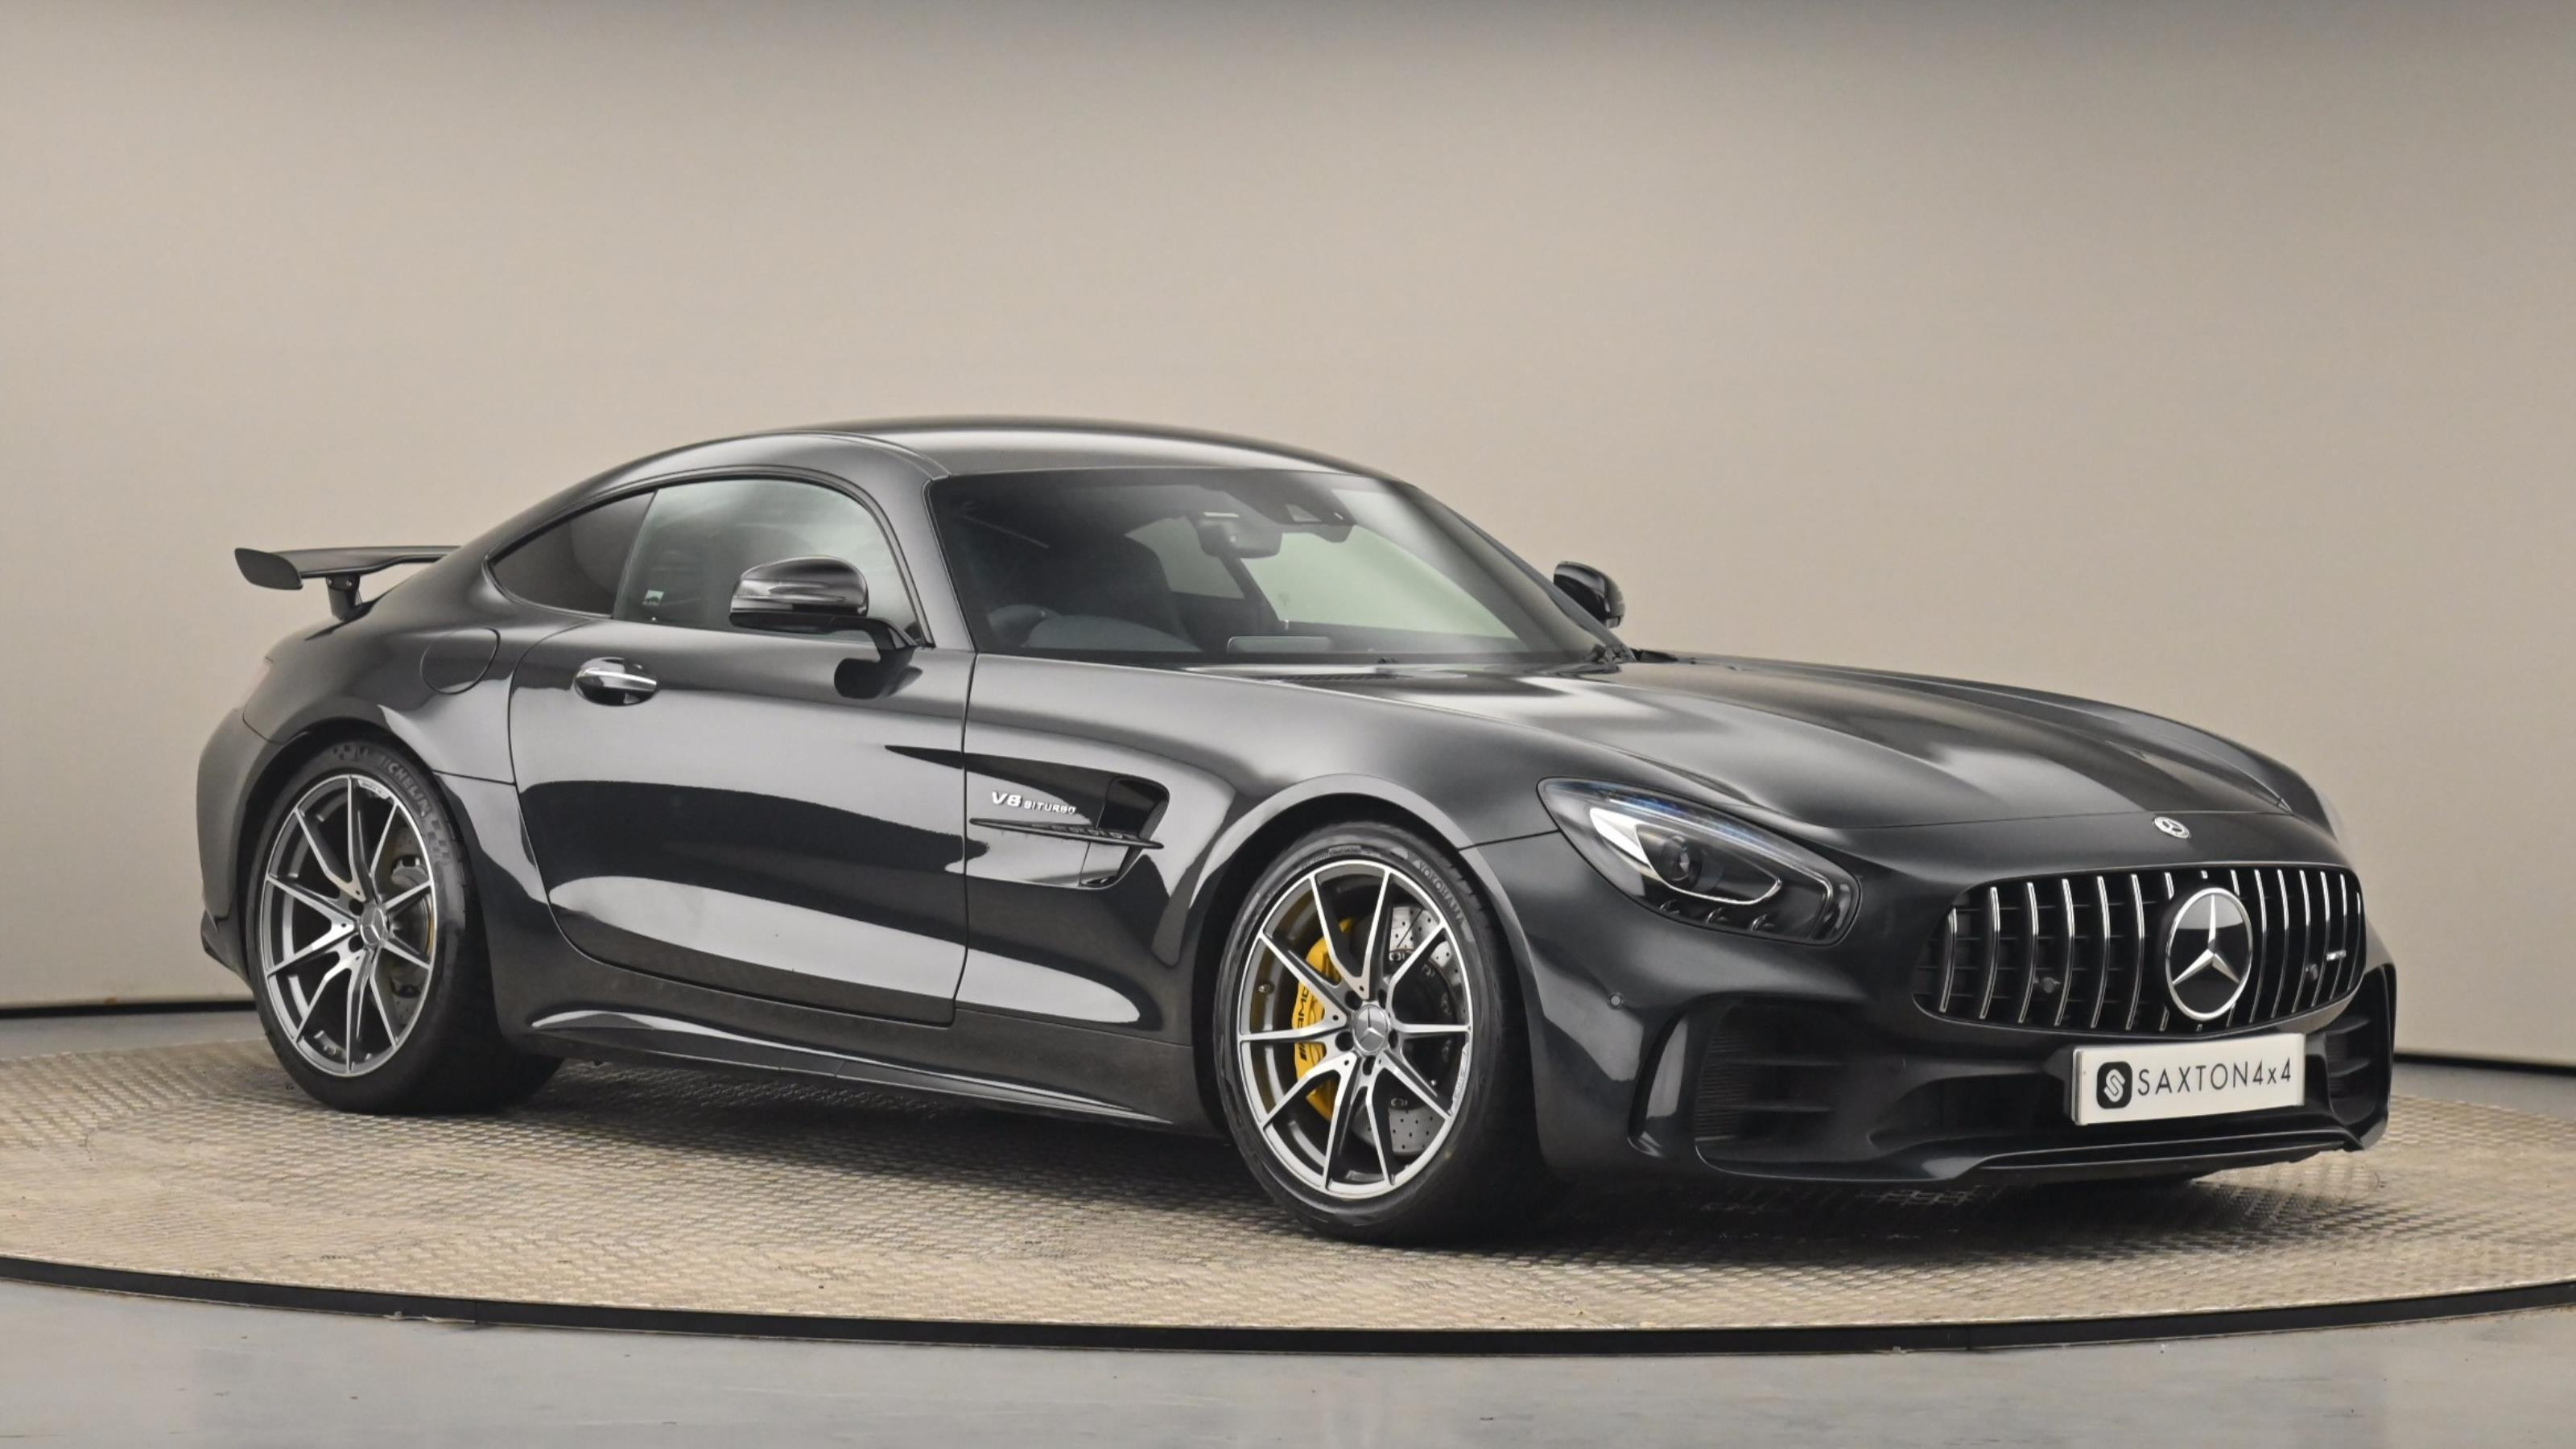 Used 2018 Mercedes-Benz AMG GT GT R Premium 2dr Auto BLACK at Saxton4x4